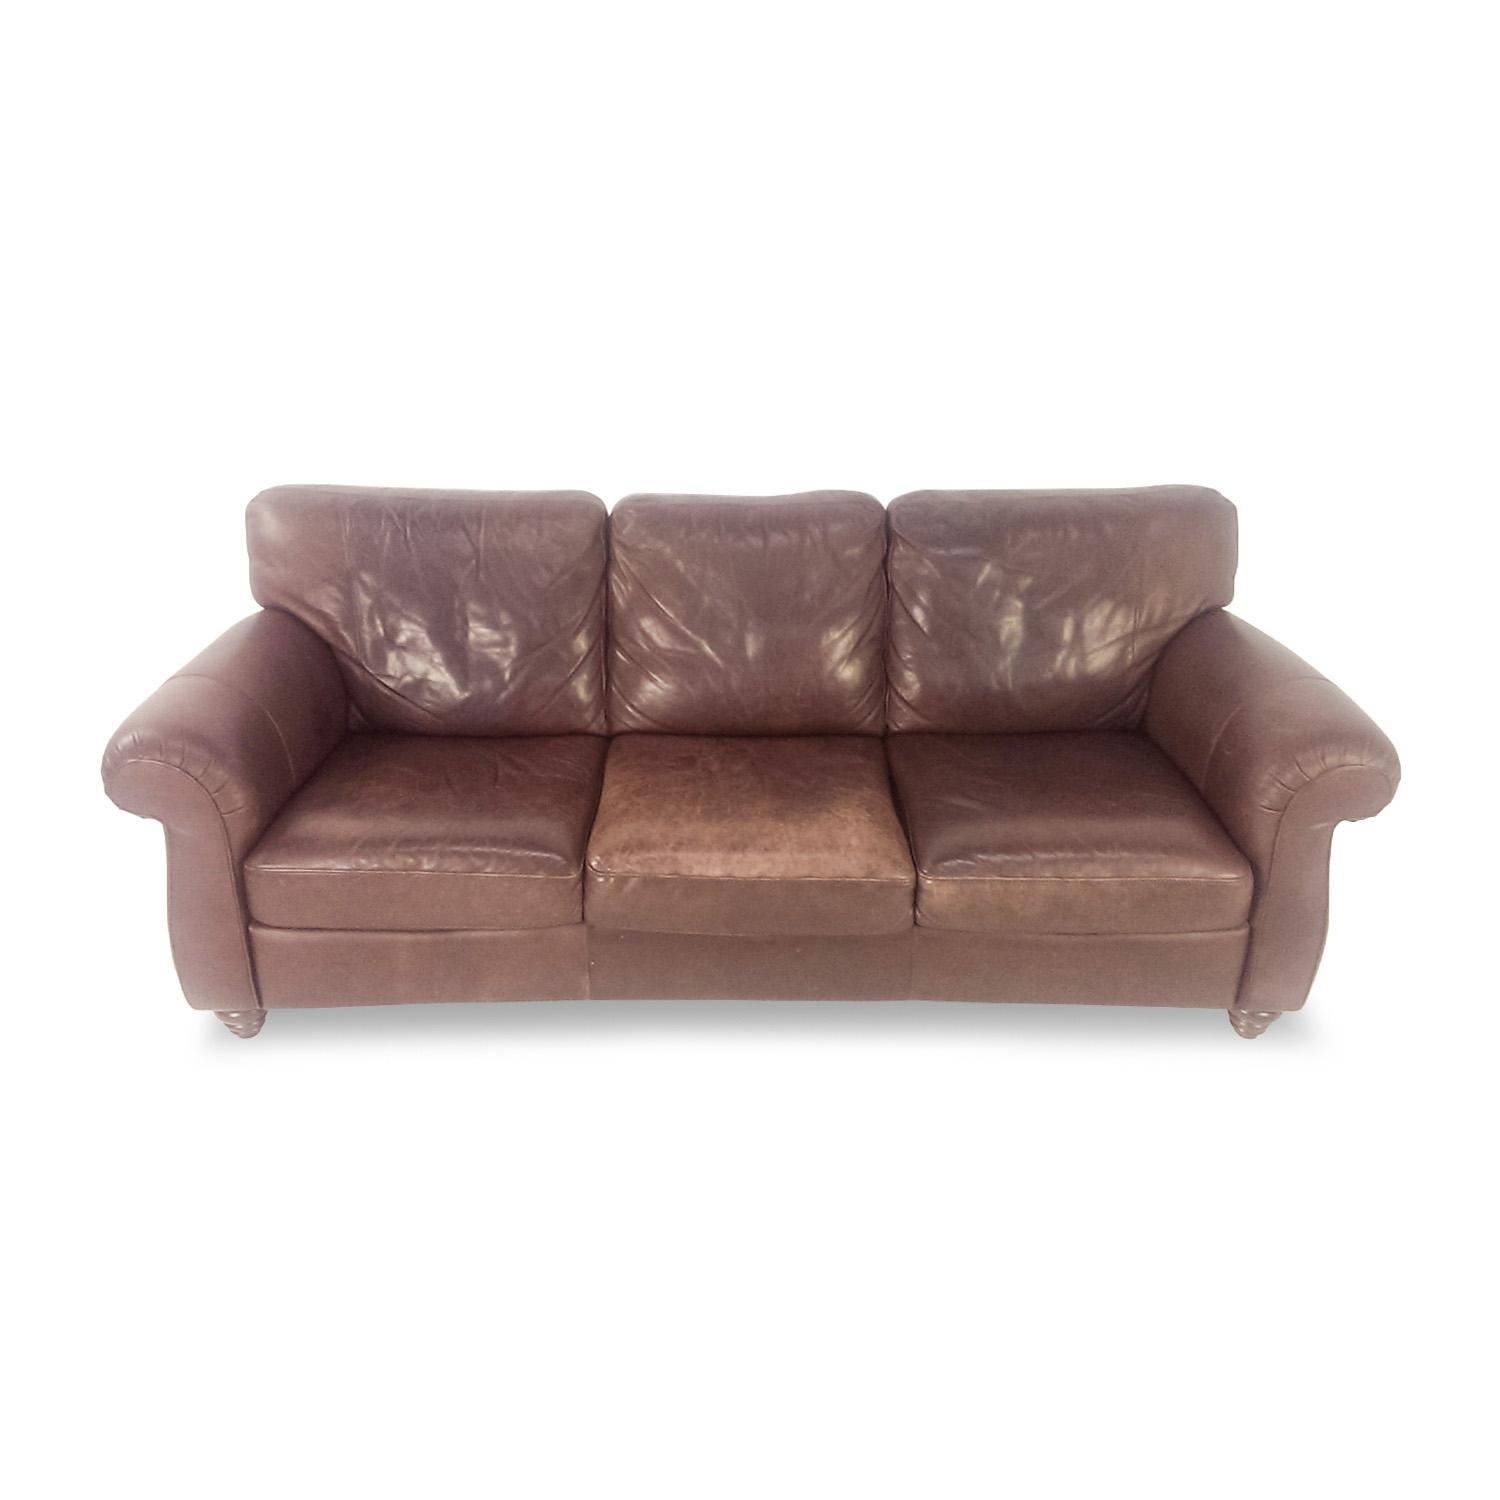 61% Off - Taupe Leather Couch / Sofas in Classic Sofas For Sale